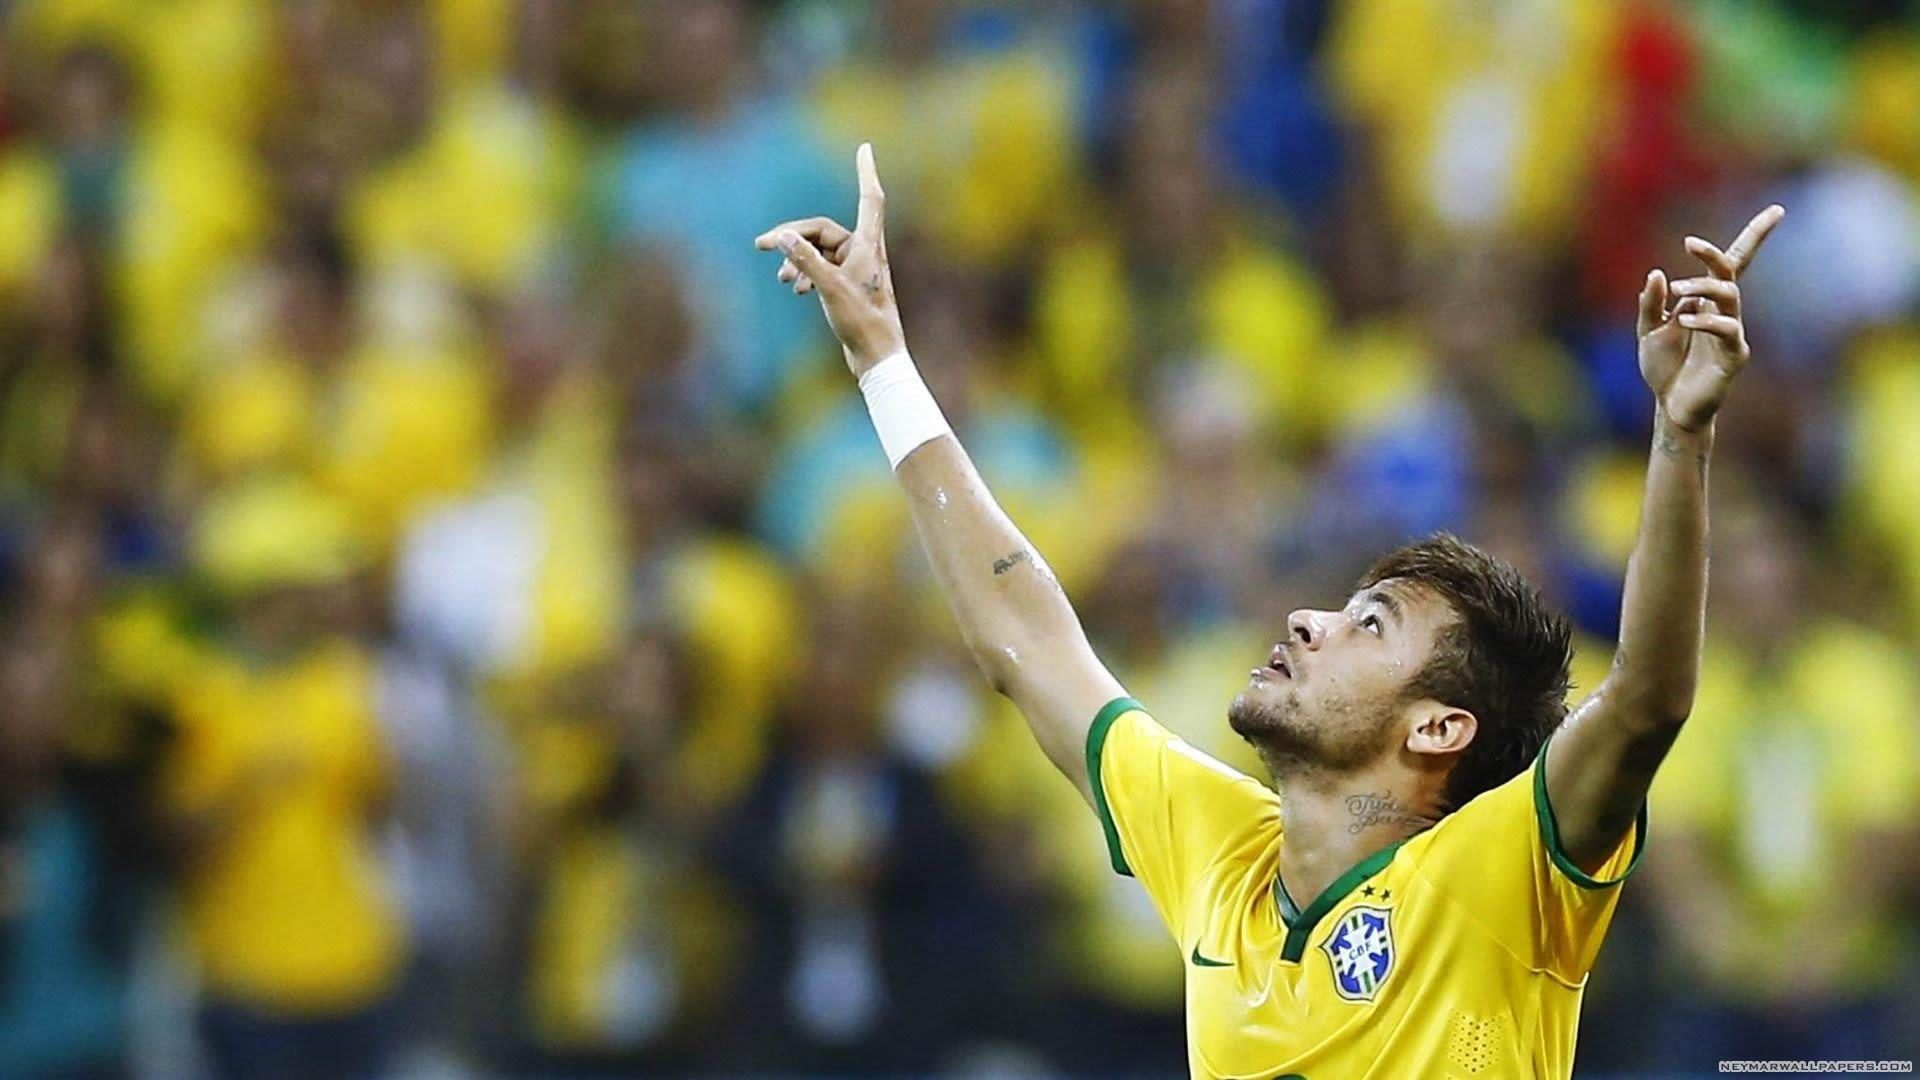 brazil neymar wallpaper 2014 - photo #26